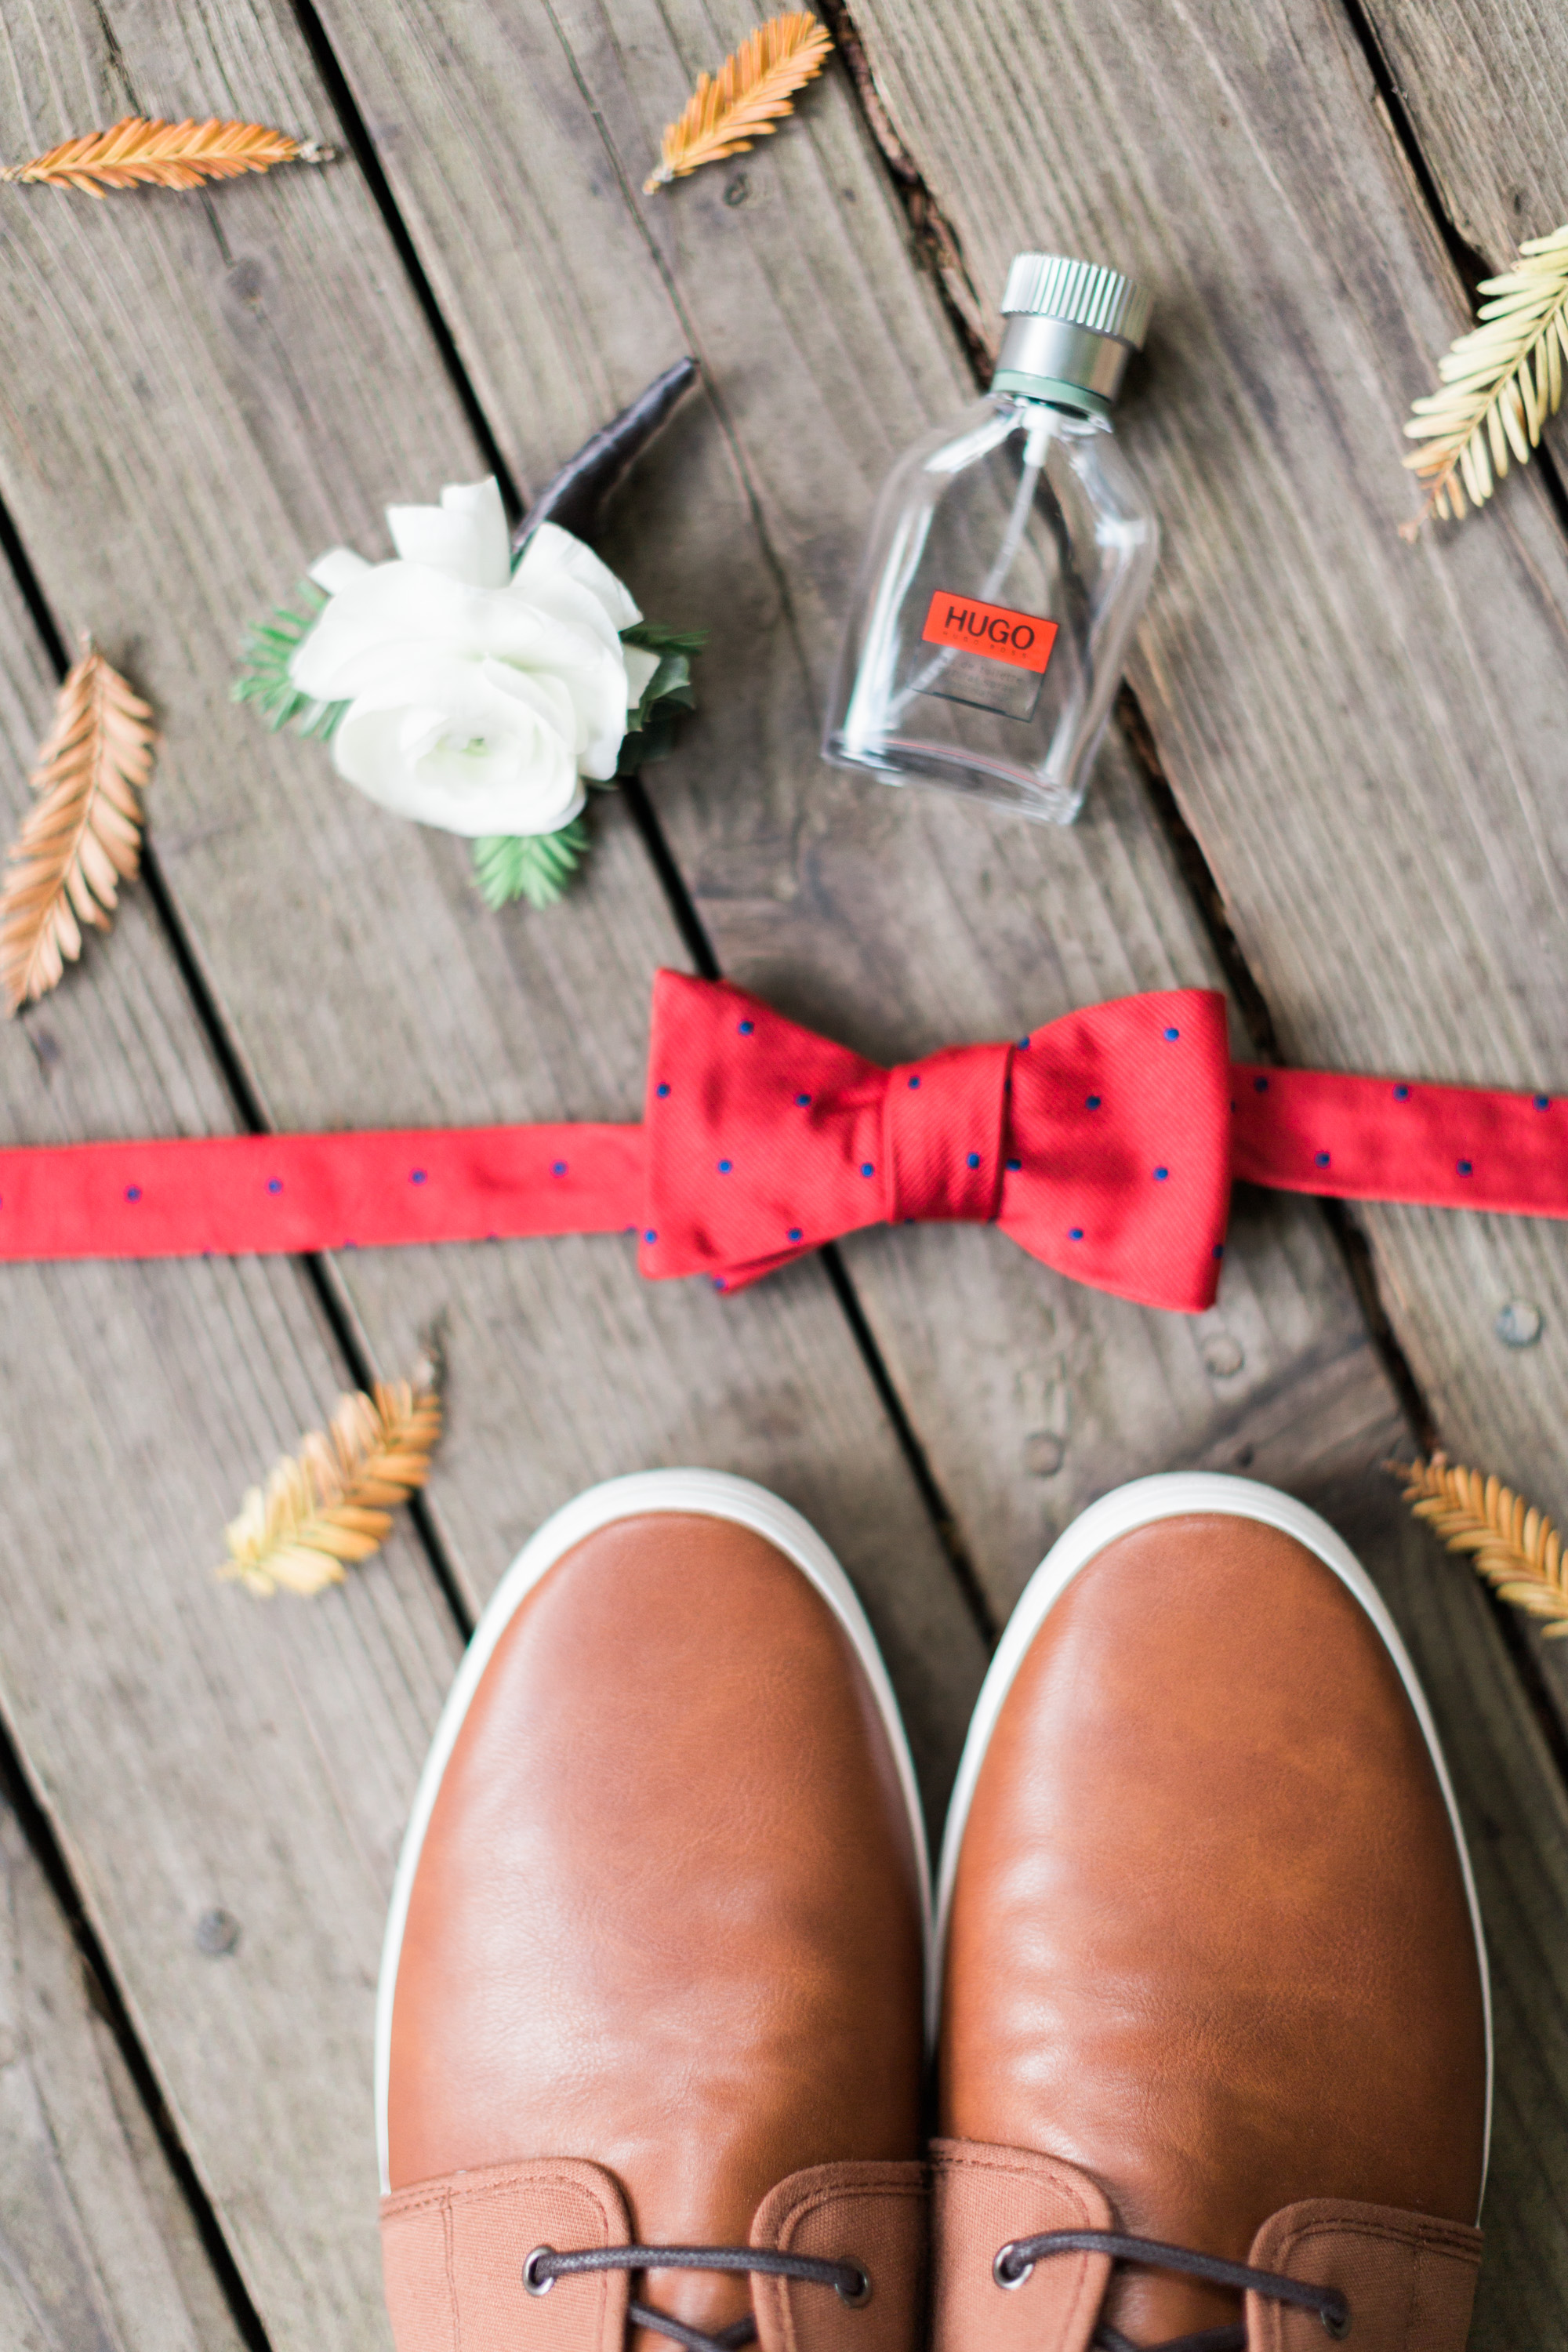 Grooms details with red bowtie, leather shoes, cologne & boutonniere